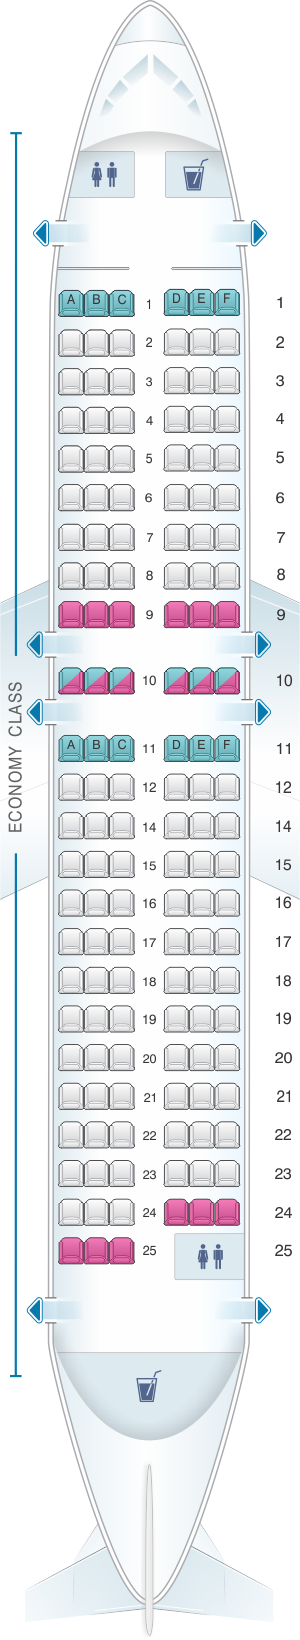 Seat map for Scandinavian Airlines (SAS) Airbus A319